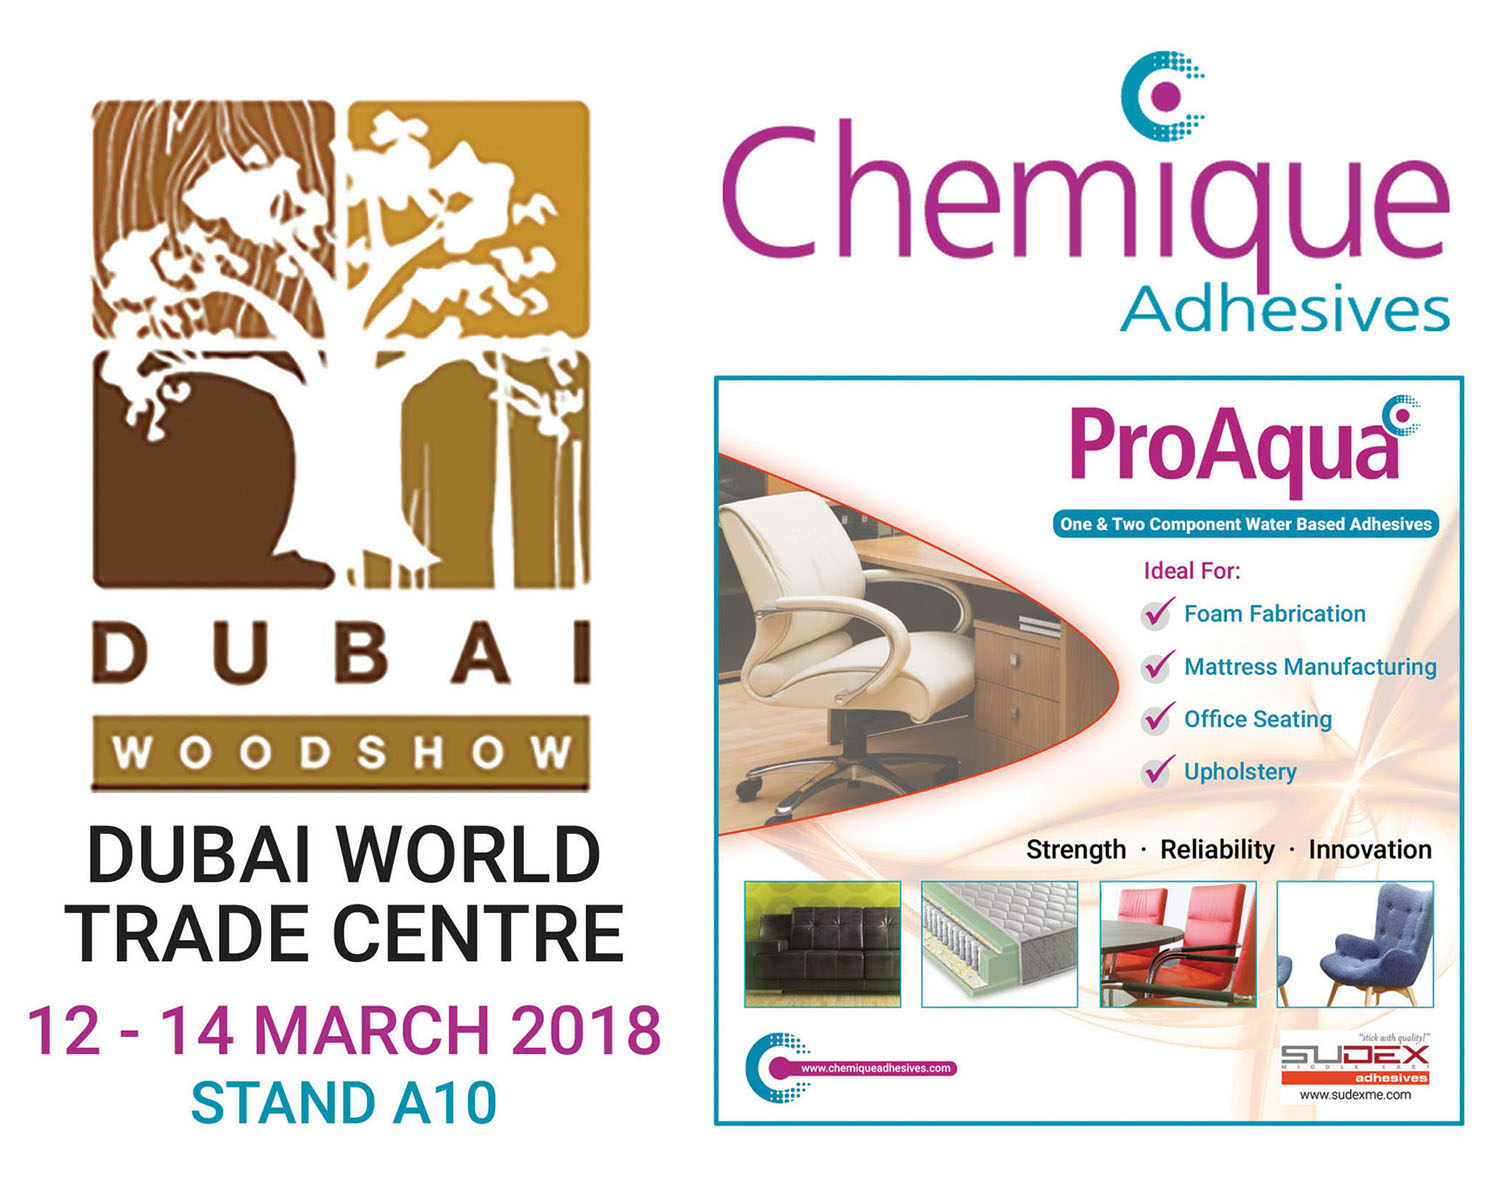 Chemique_Adhesives_Dubai.jpg